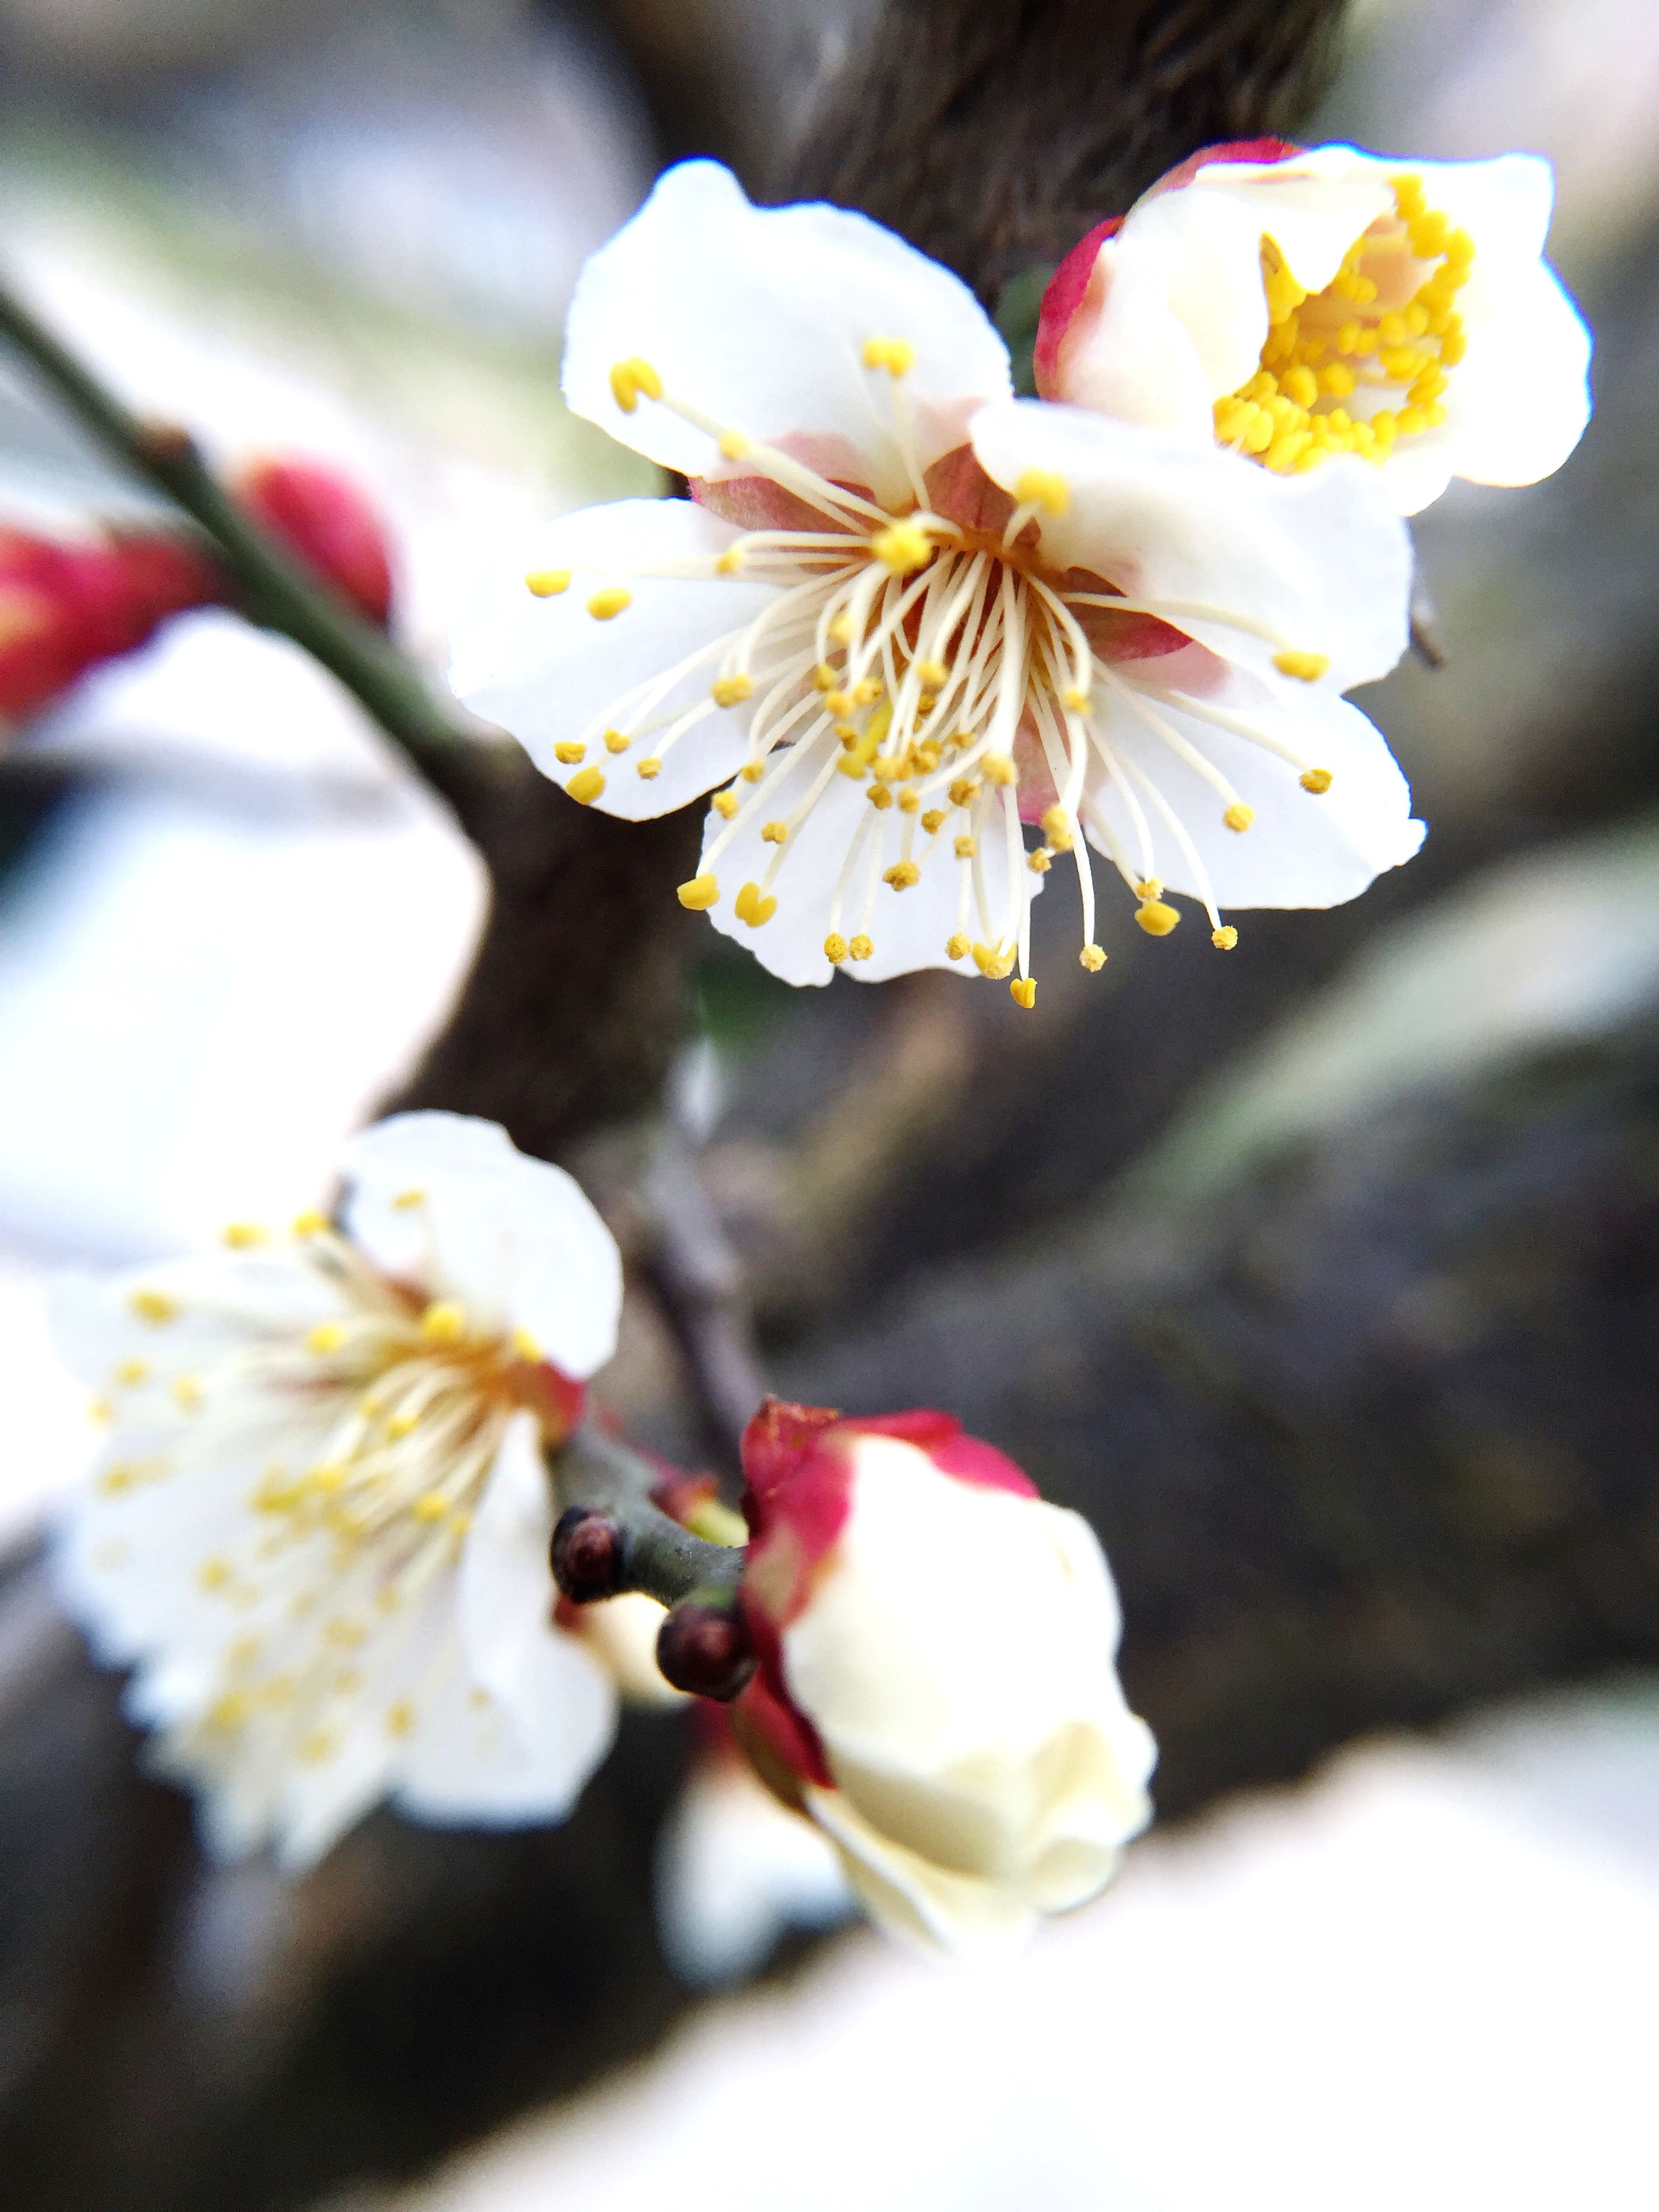 flower, petal, freshness, fragility, flower head, beauty in nature, close-up, white color, growth, nature, pollen, stamen, blossom, focus on foreground, blooming, in bloom, selective focus, botany, springtime, no people